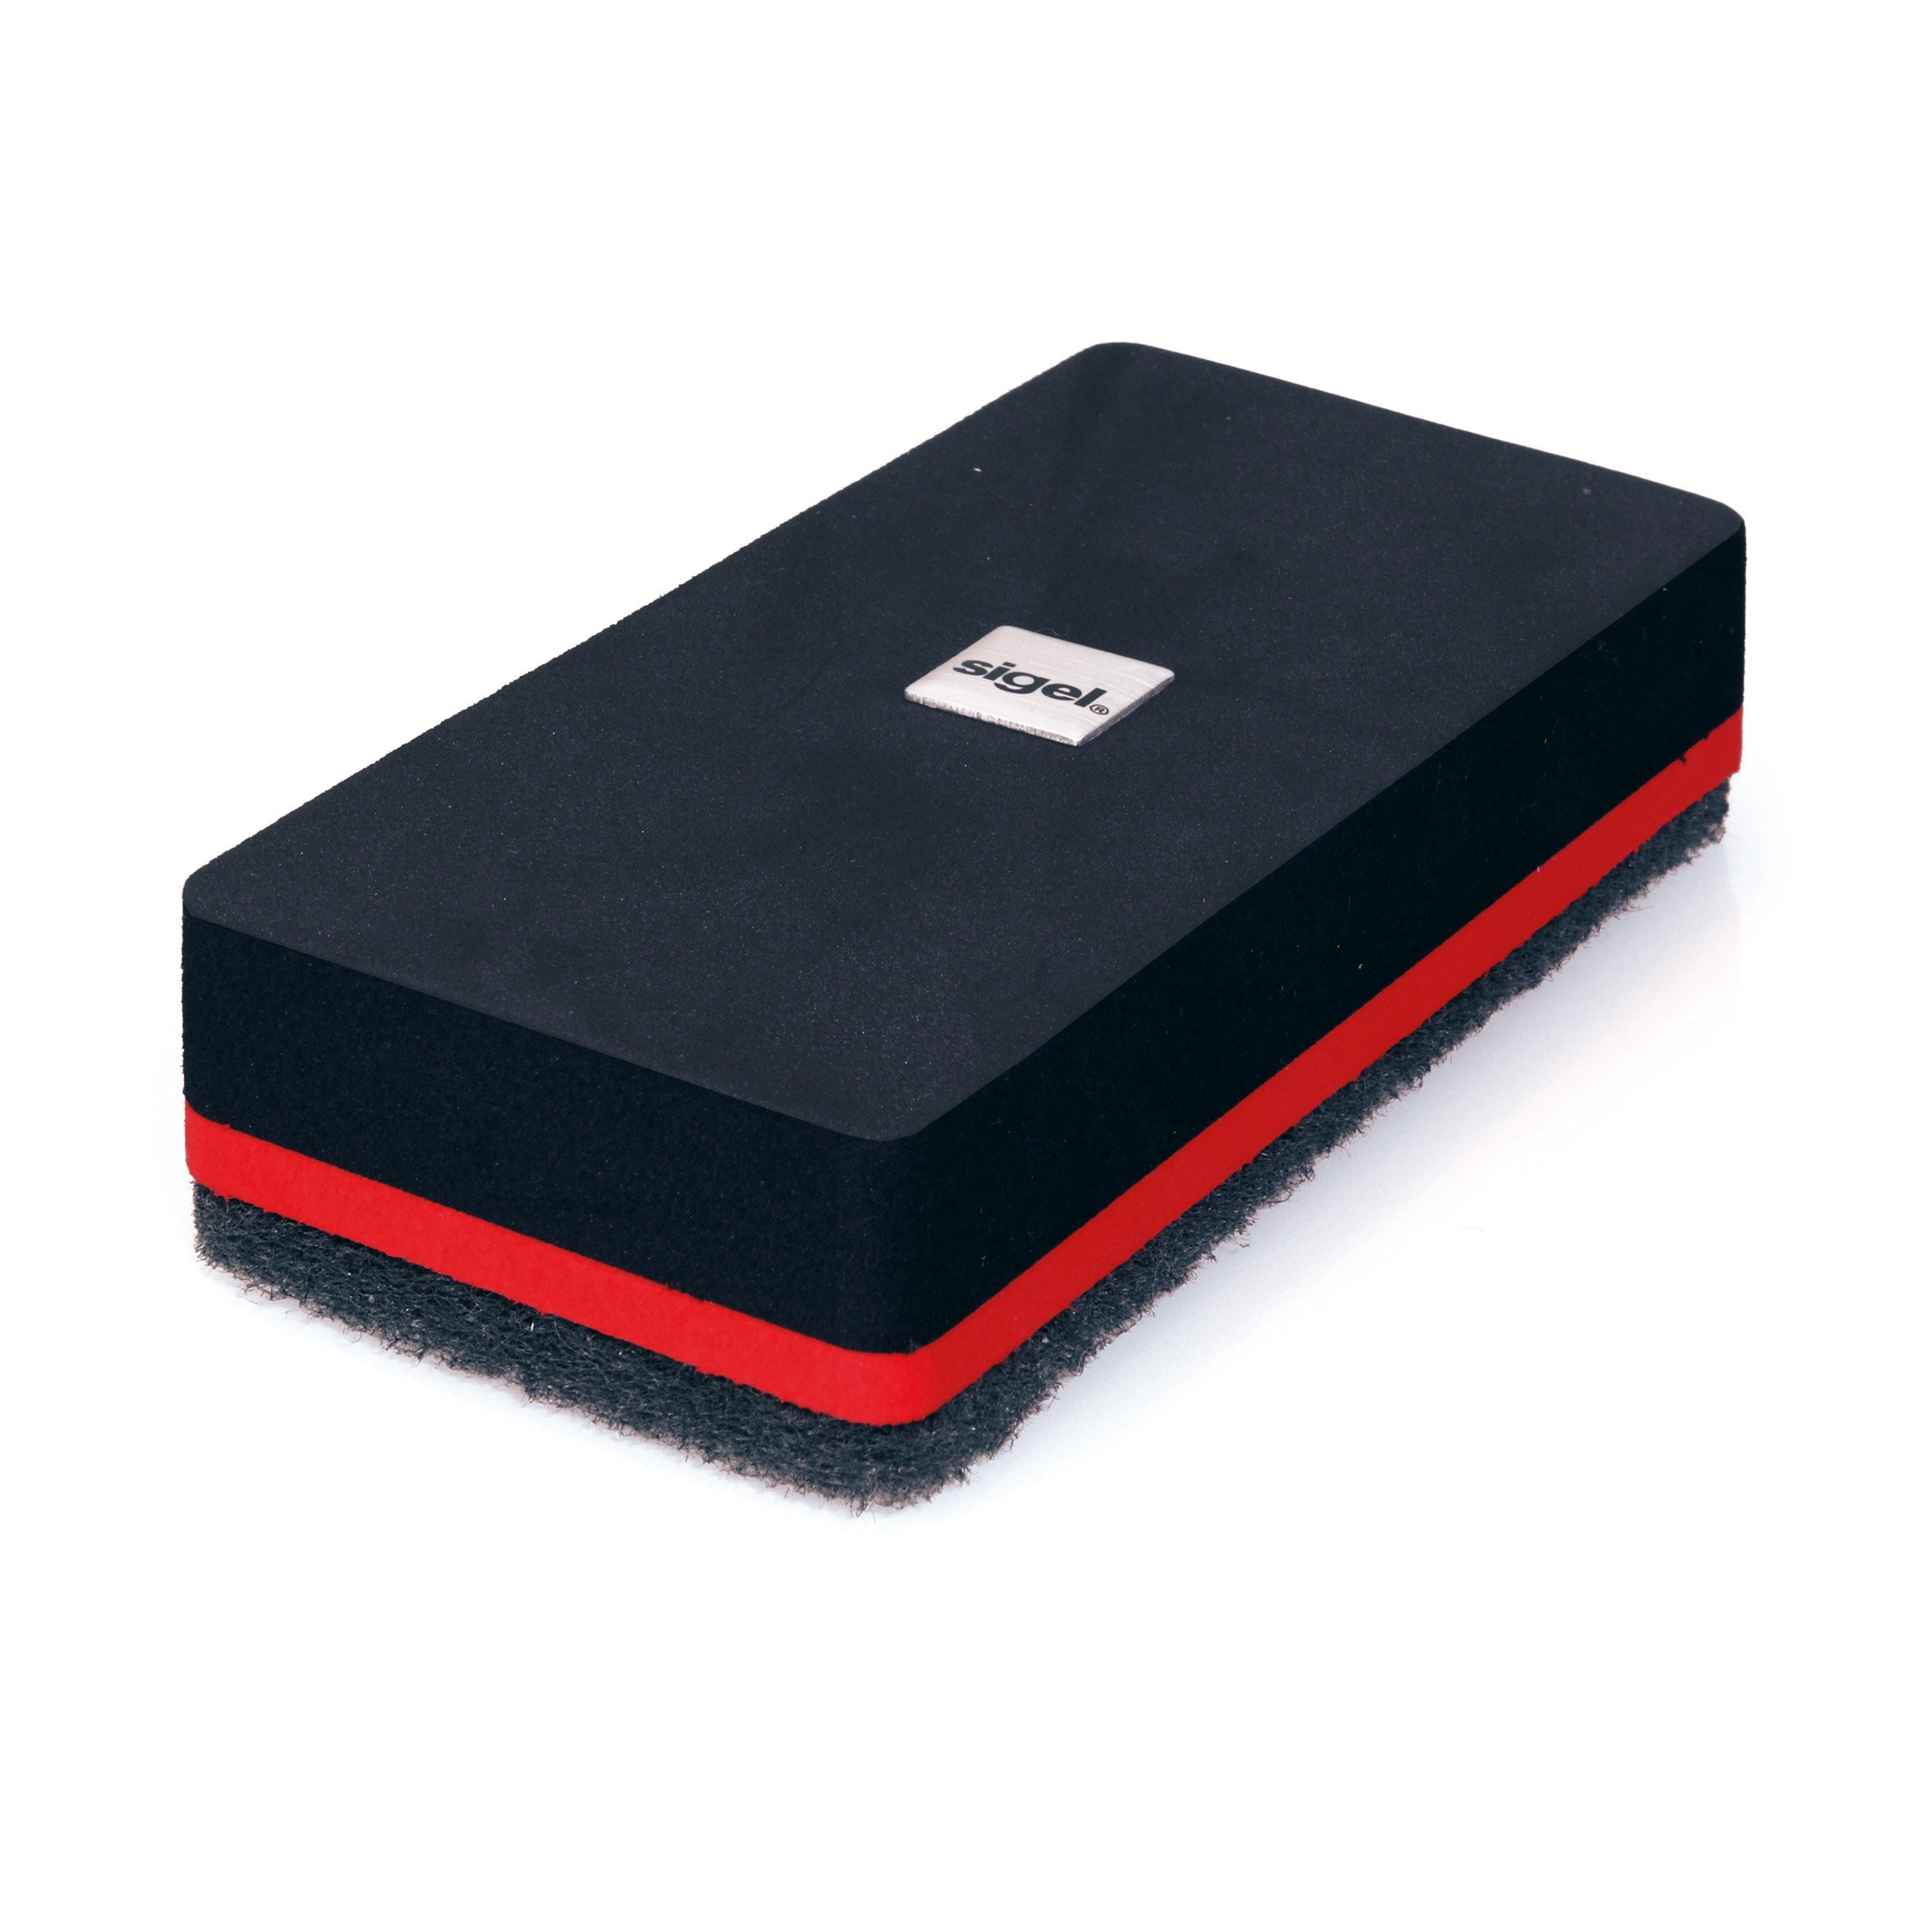 Sigel GL188 Board Eraser, magnetic